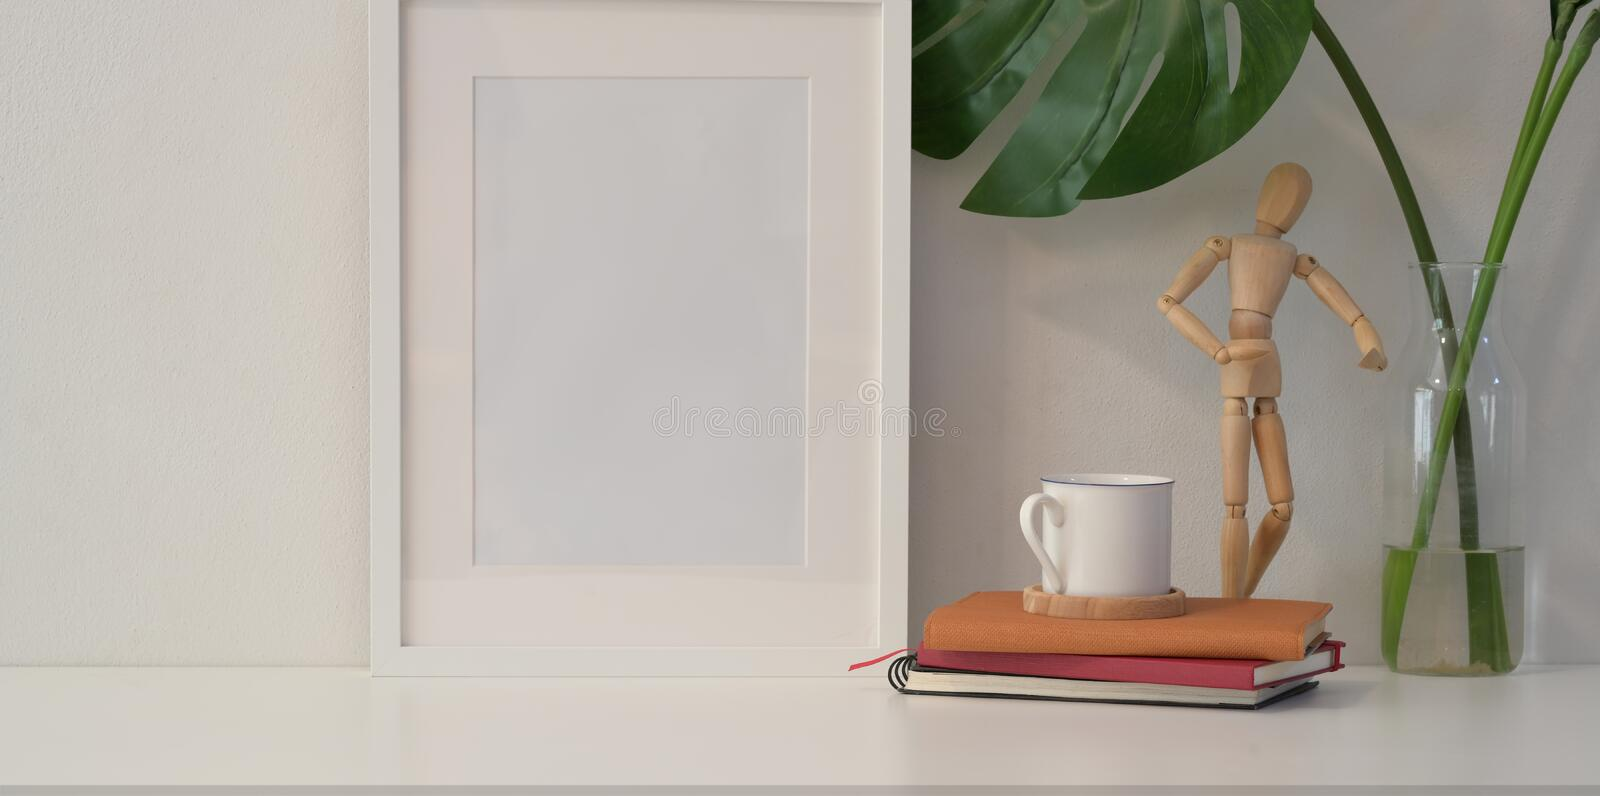 Mock up frame on white wall in minimal style royalty free stock photos